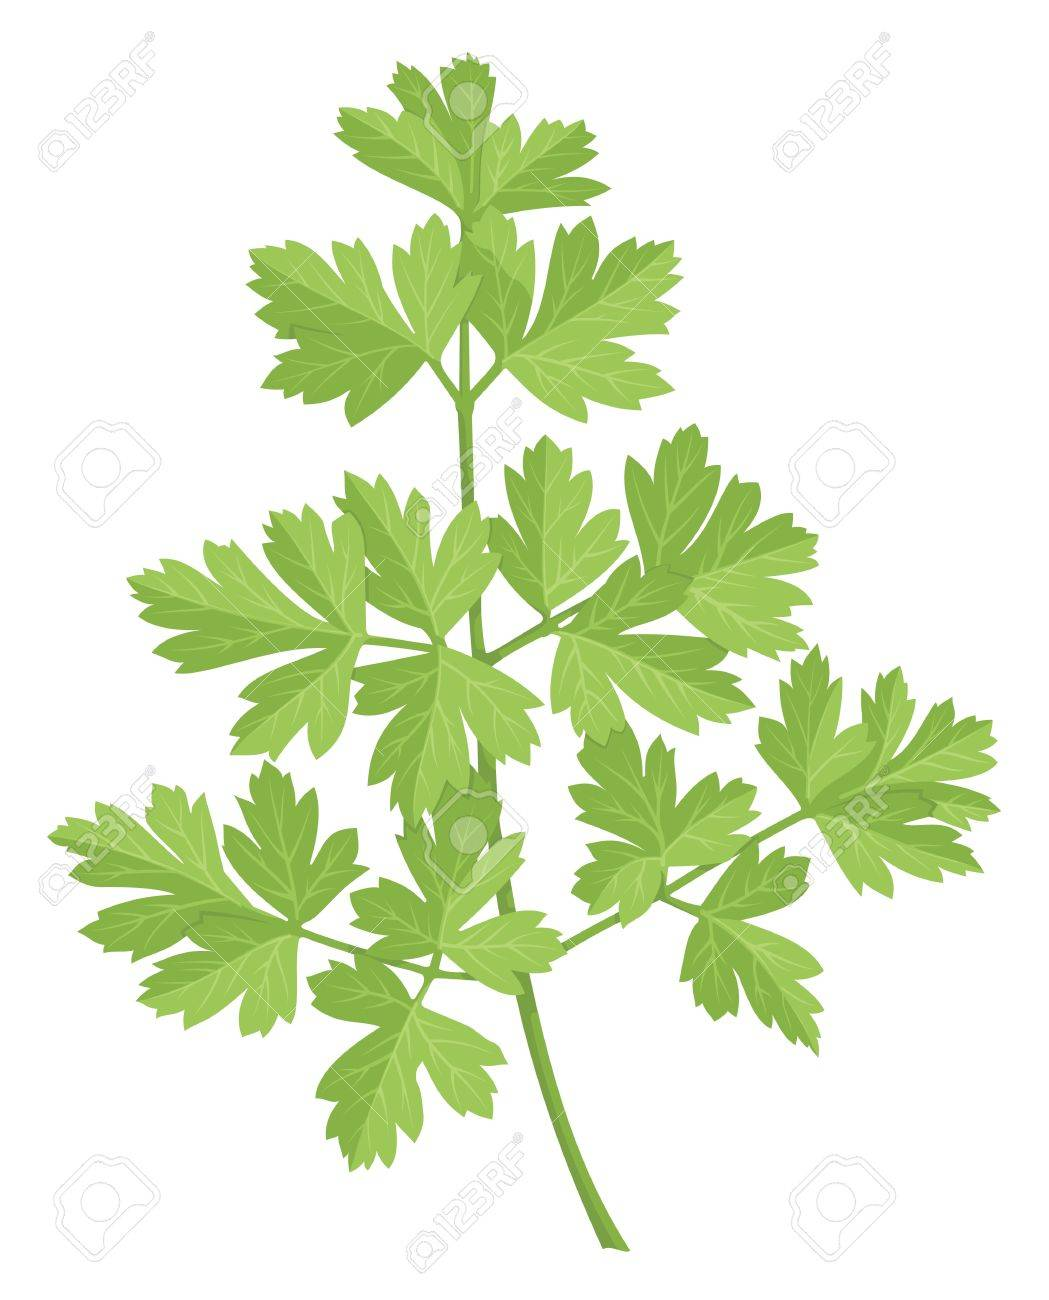 A stem of parsley with green leaves isolated on white background. - 13108676